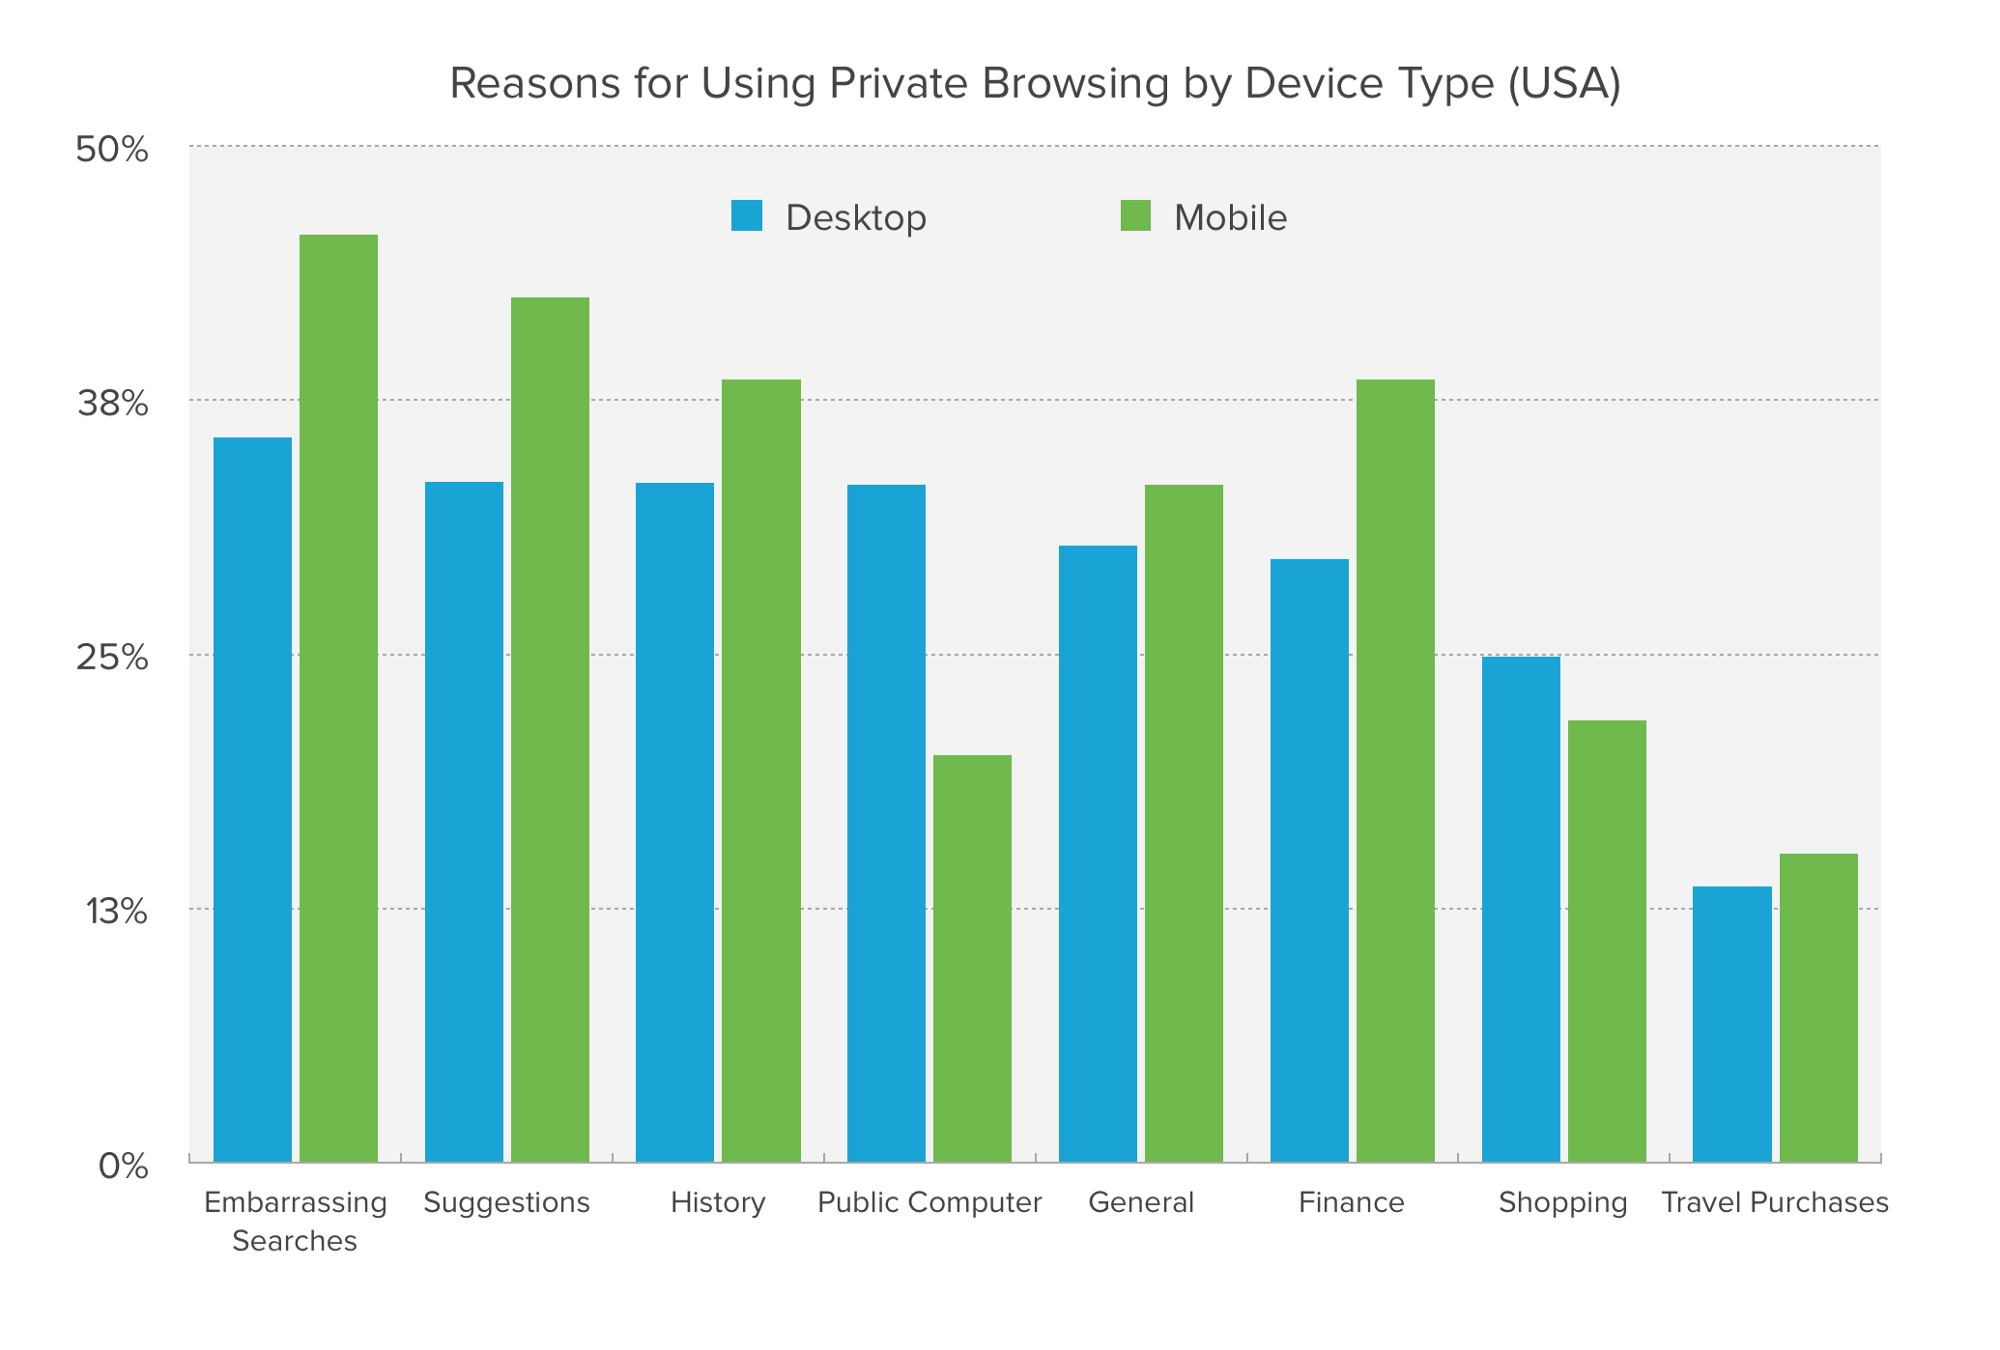 Chart showing reasons for using Private Browsing mode by device type.